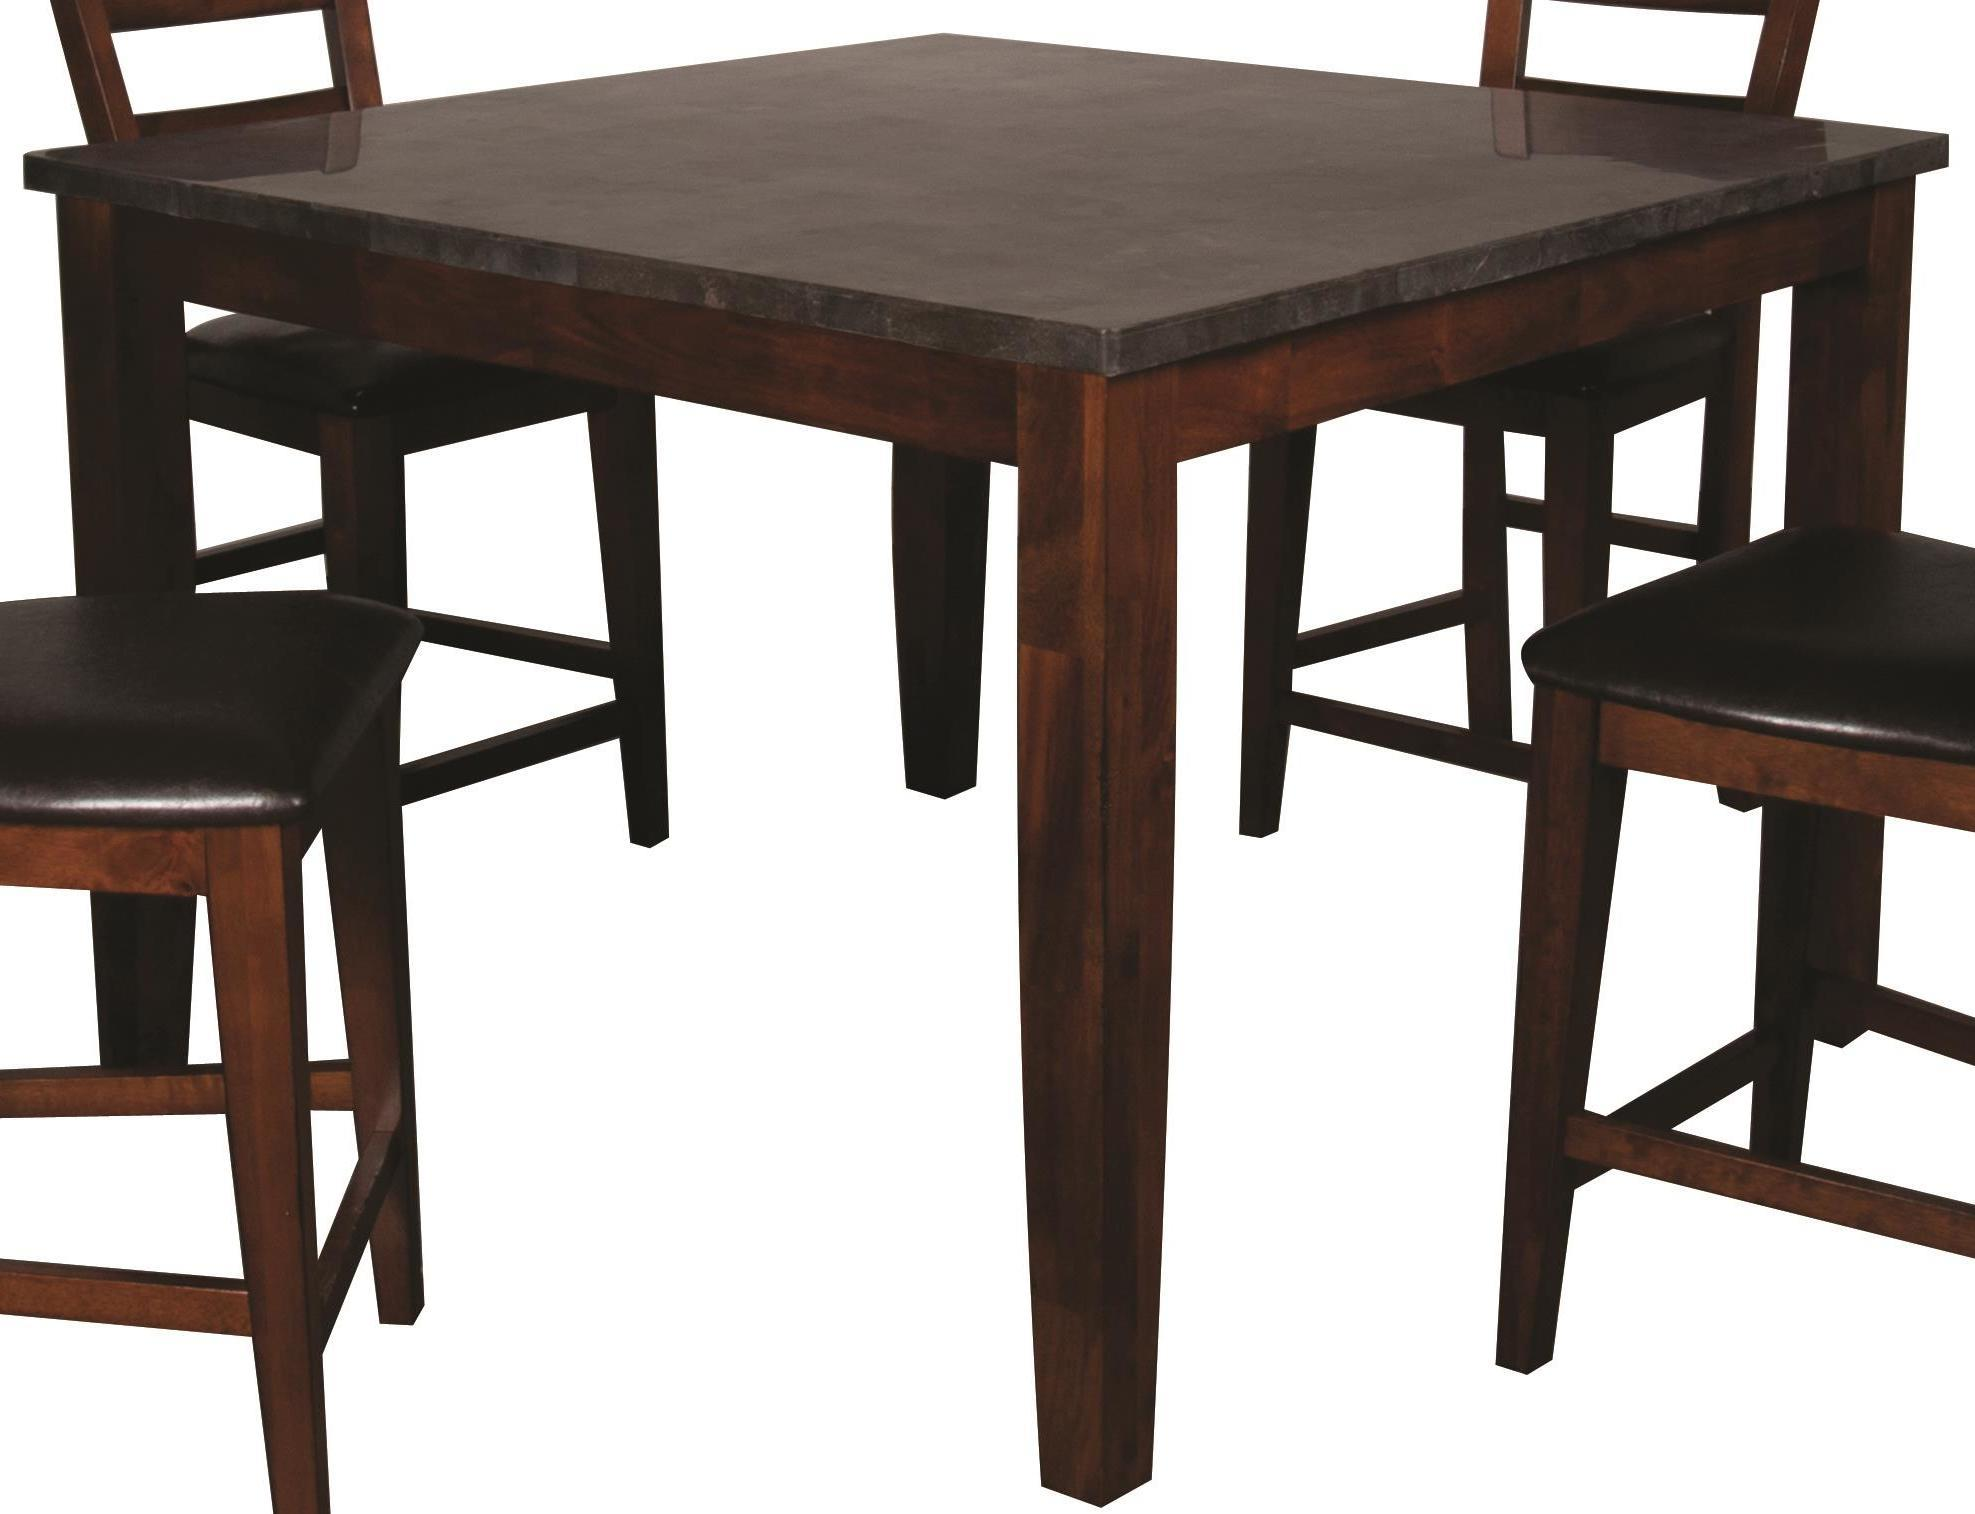 Melbourne Melbourne Pub Table by Holland House at Morris Home